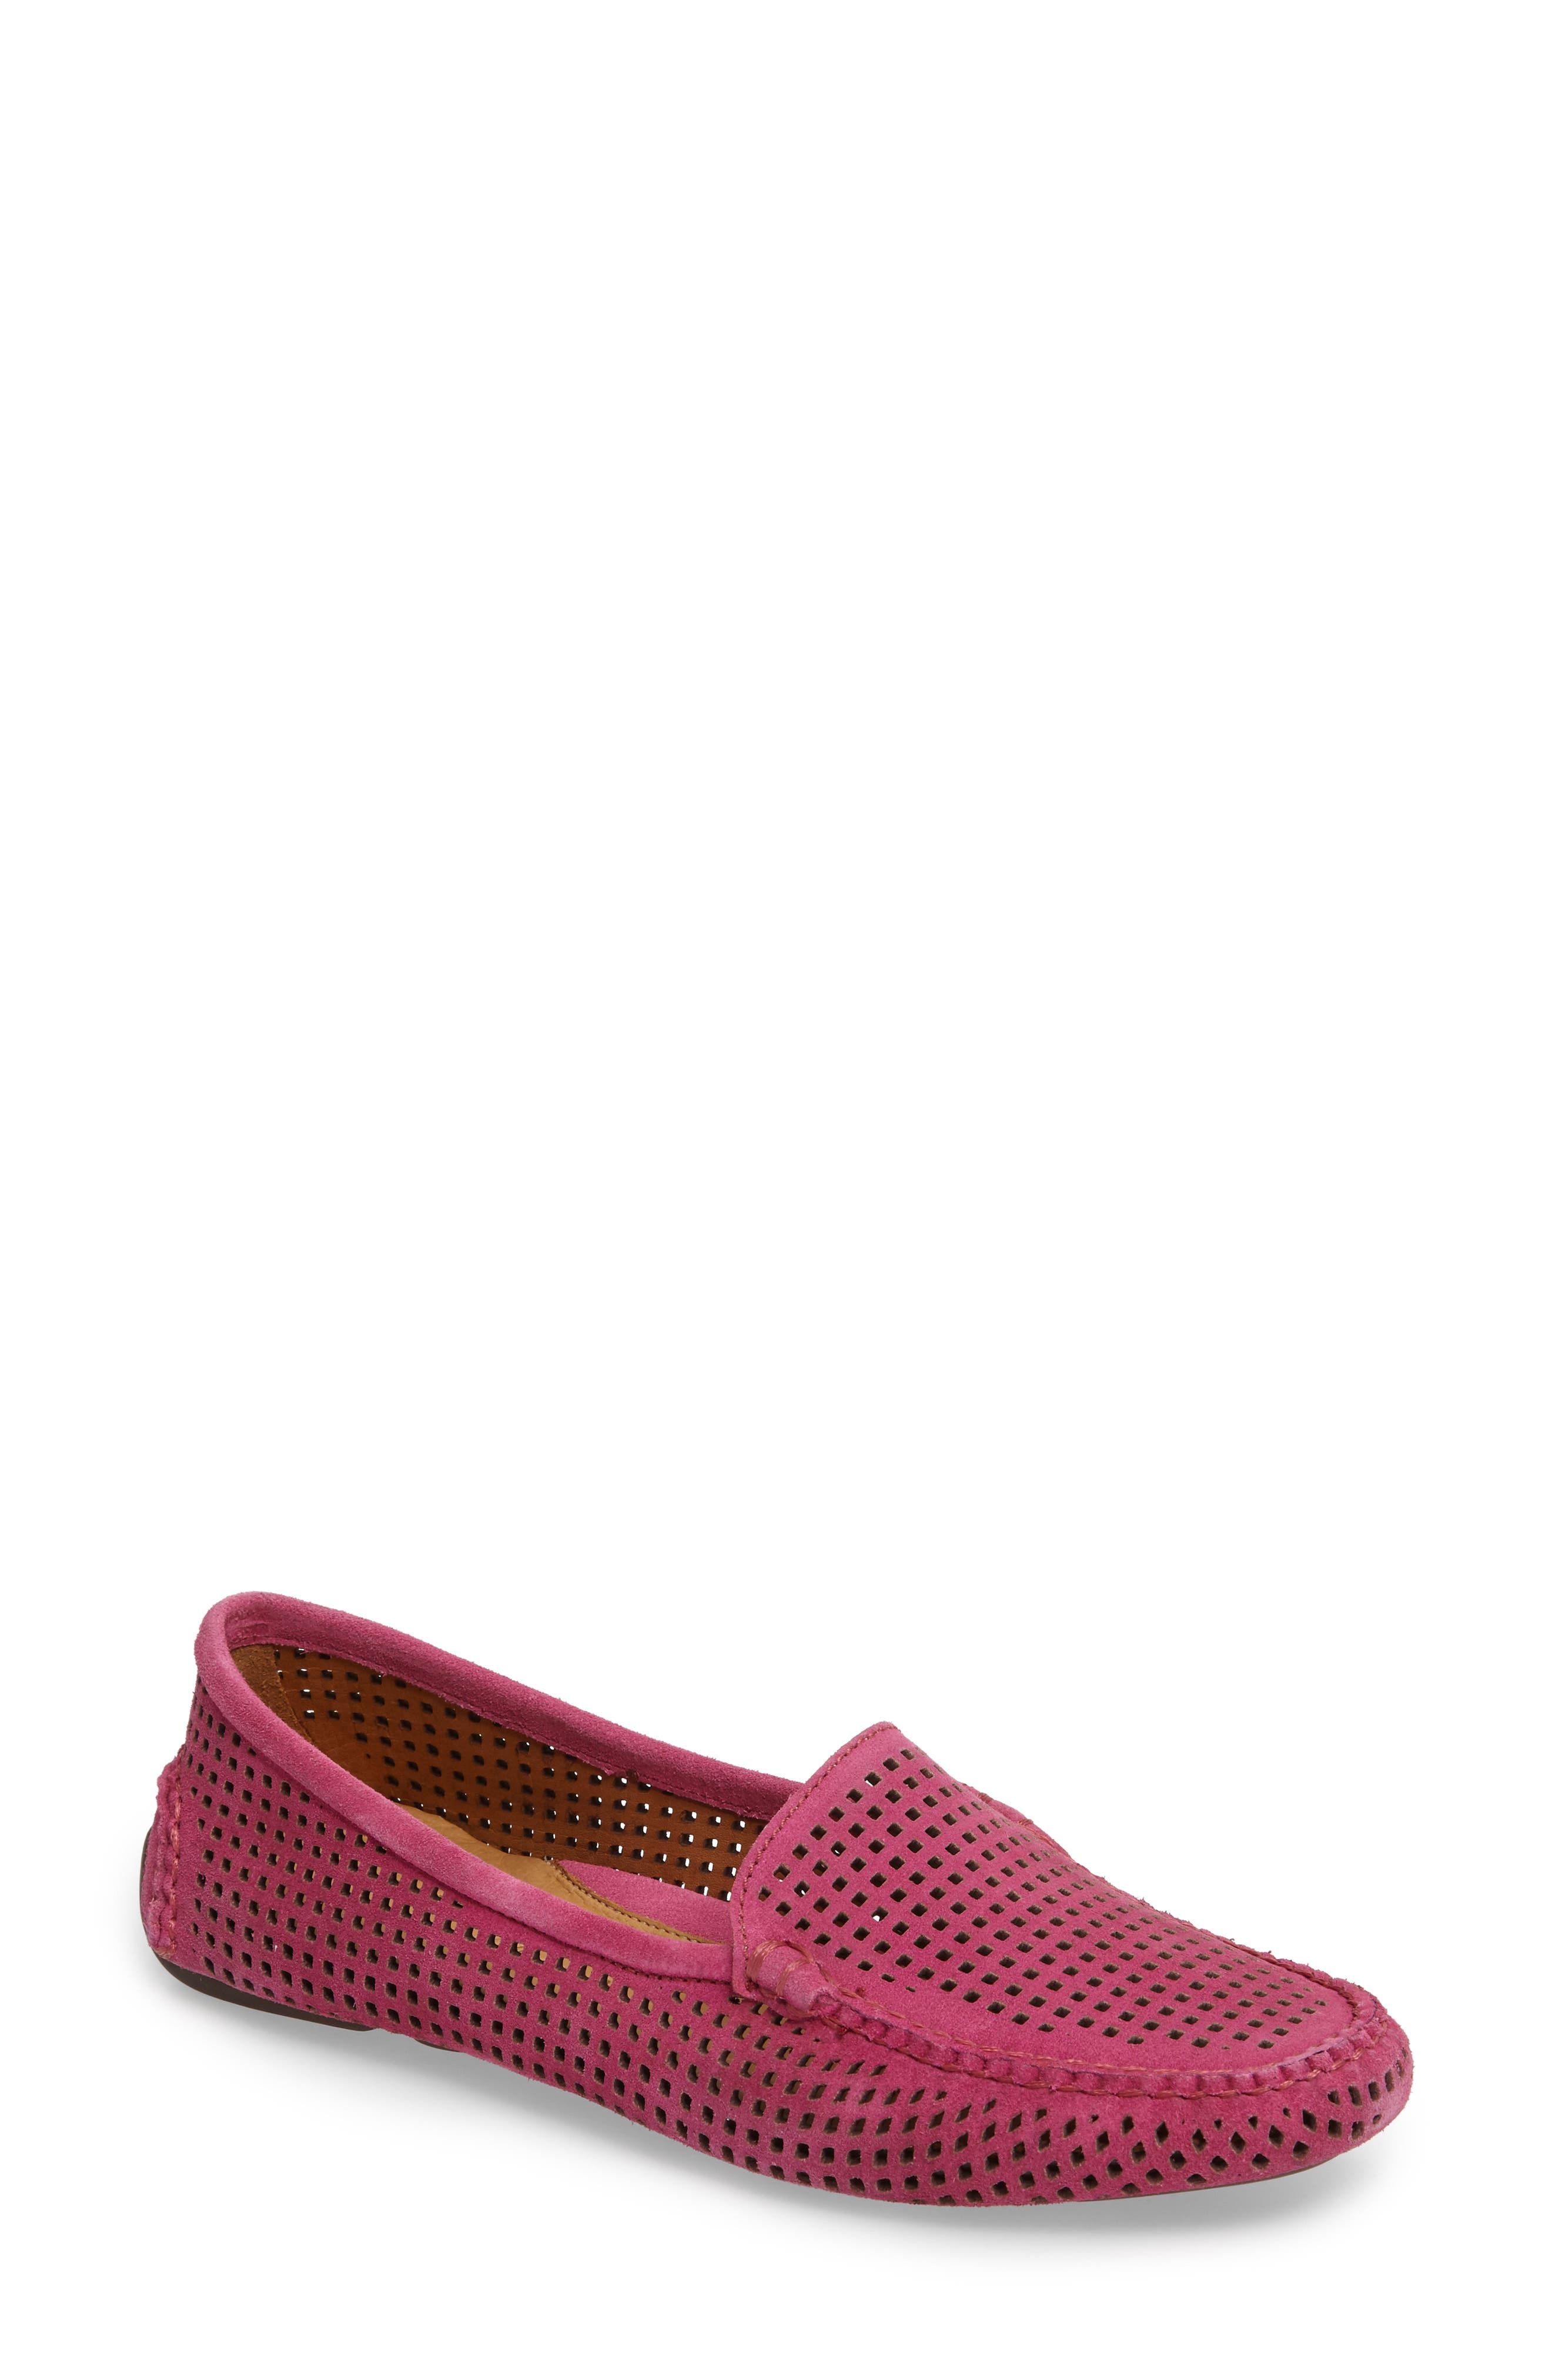 'Barrie' Flat,                         Main,                         color, Hot Pink Suede